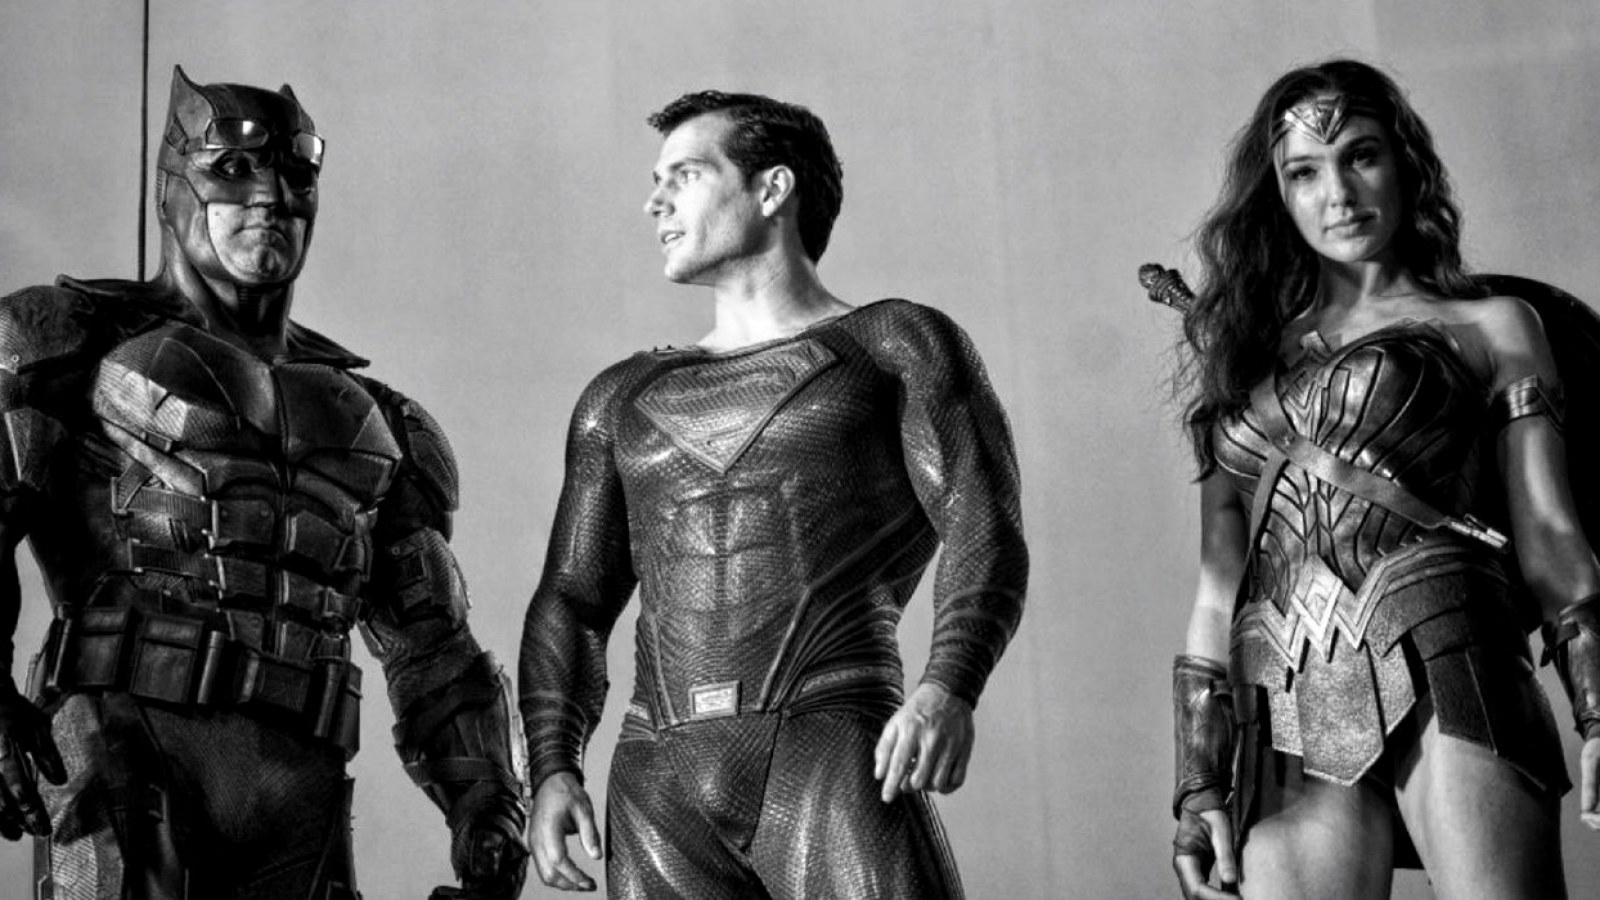 Zack Snyder's 'Justice League' Reveal Hints at New Scenes for Superman,  Batman and Martian Manhunter